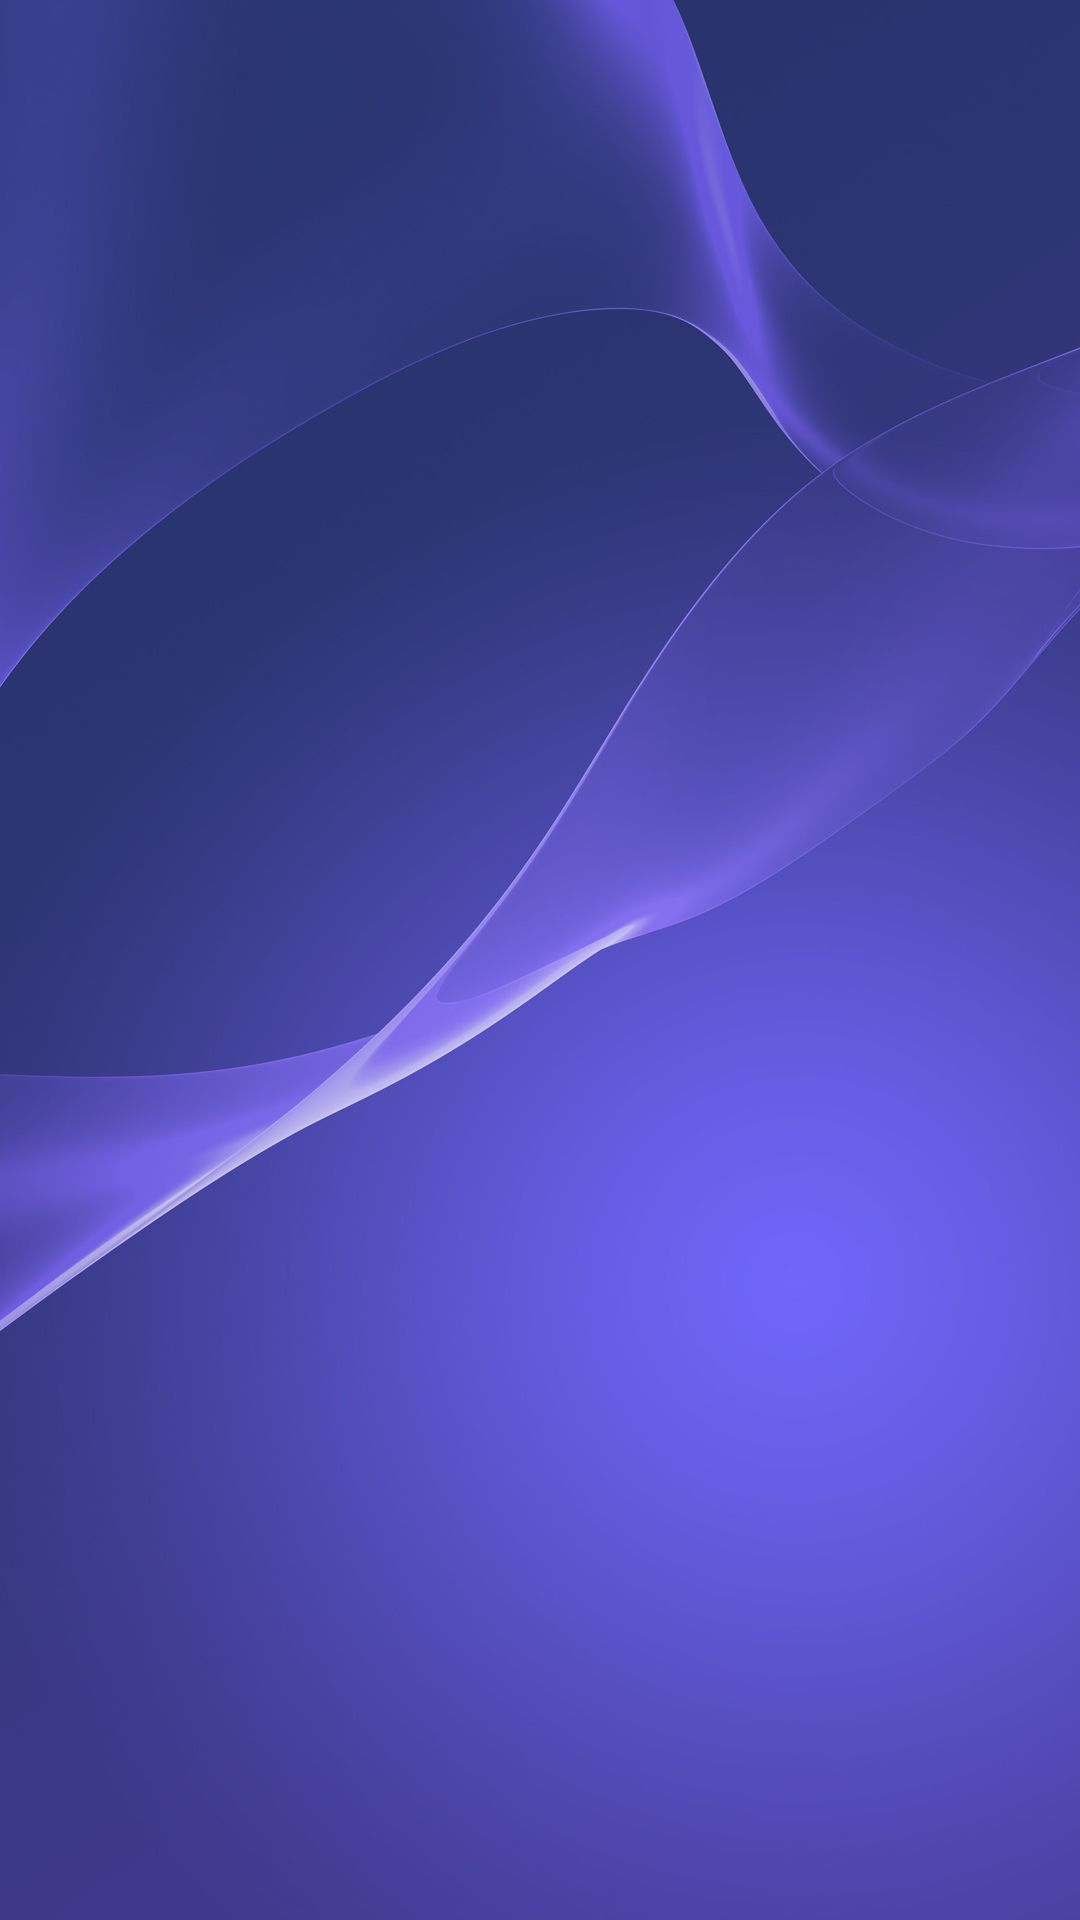 Blue Abstract Wave Iphone 7 Wallpaper Color Wallpaper Iphone Waves Wallpaper Xperia Wallpaper